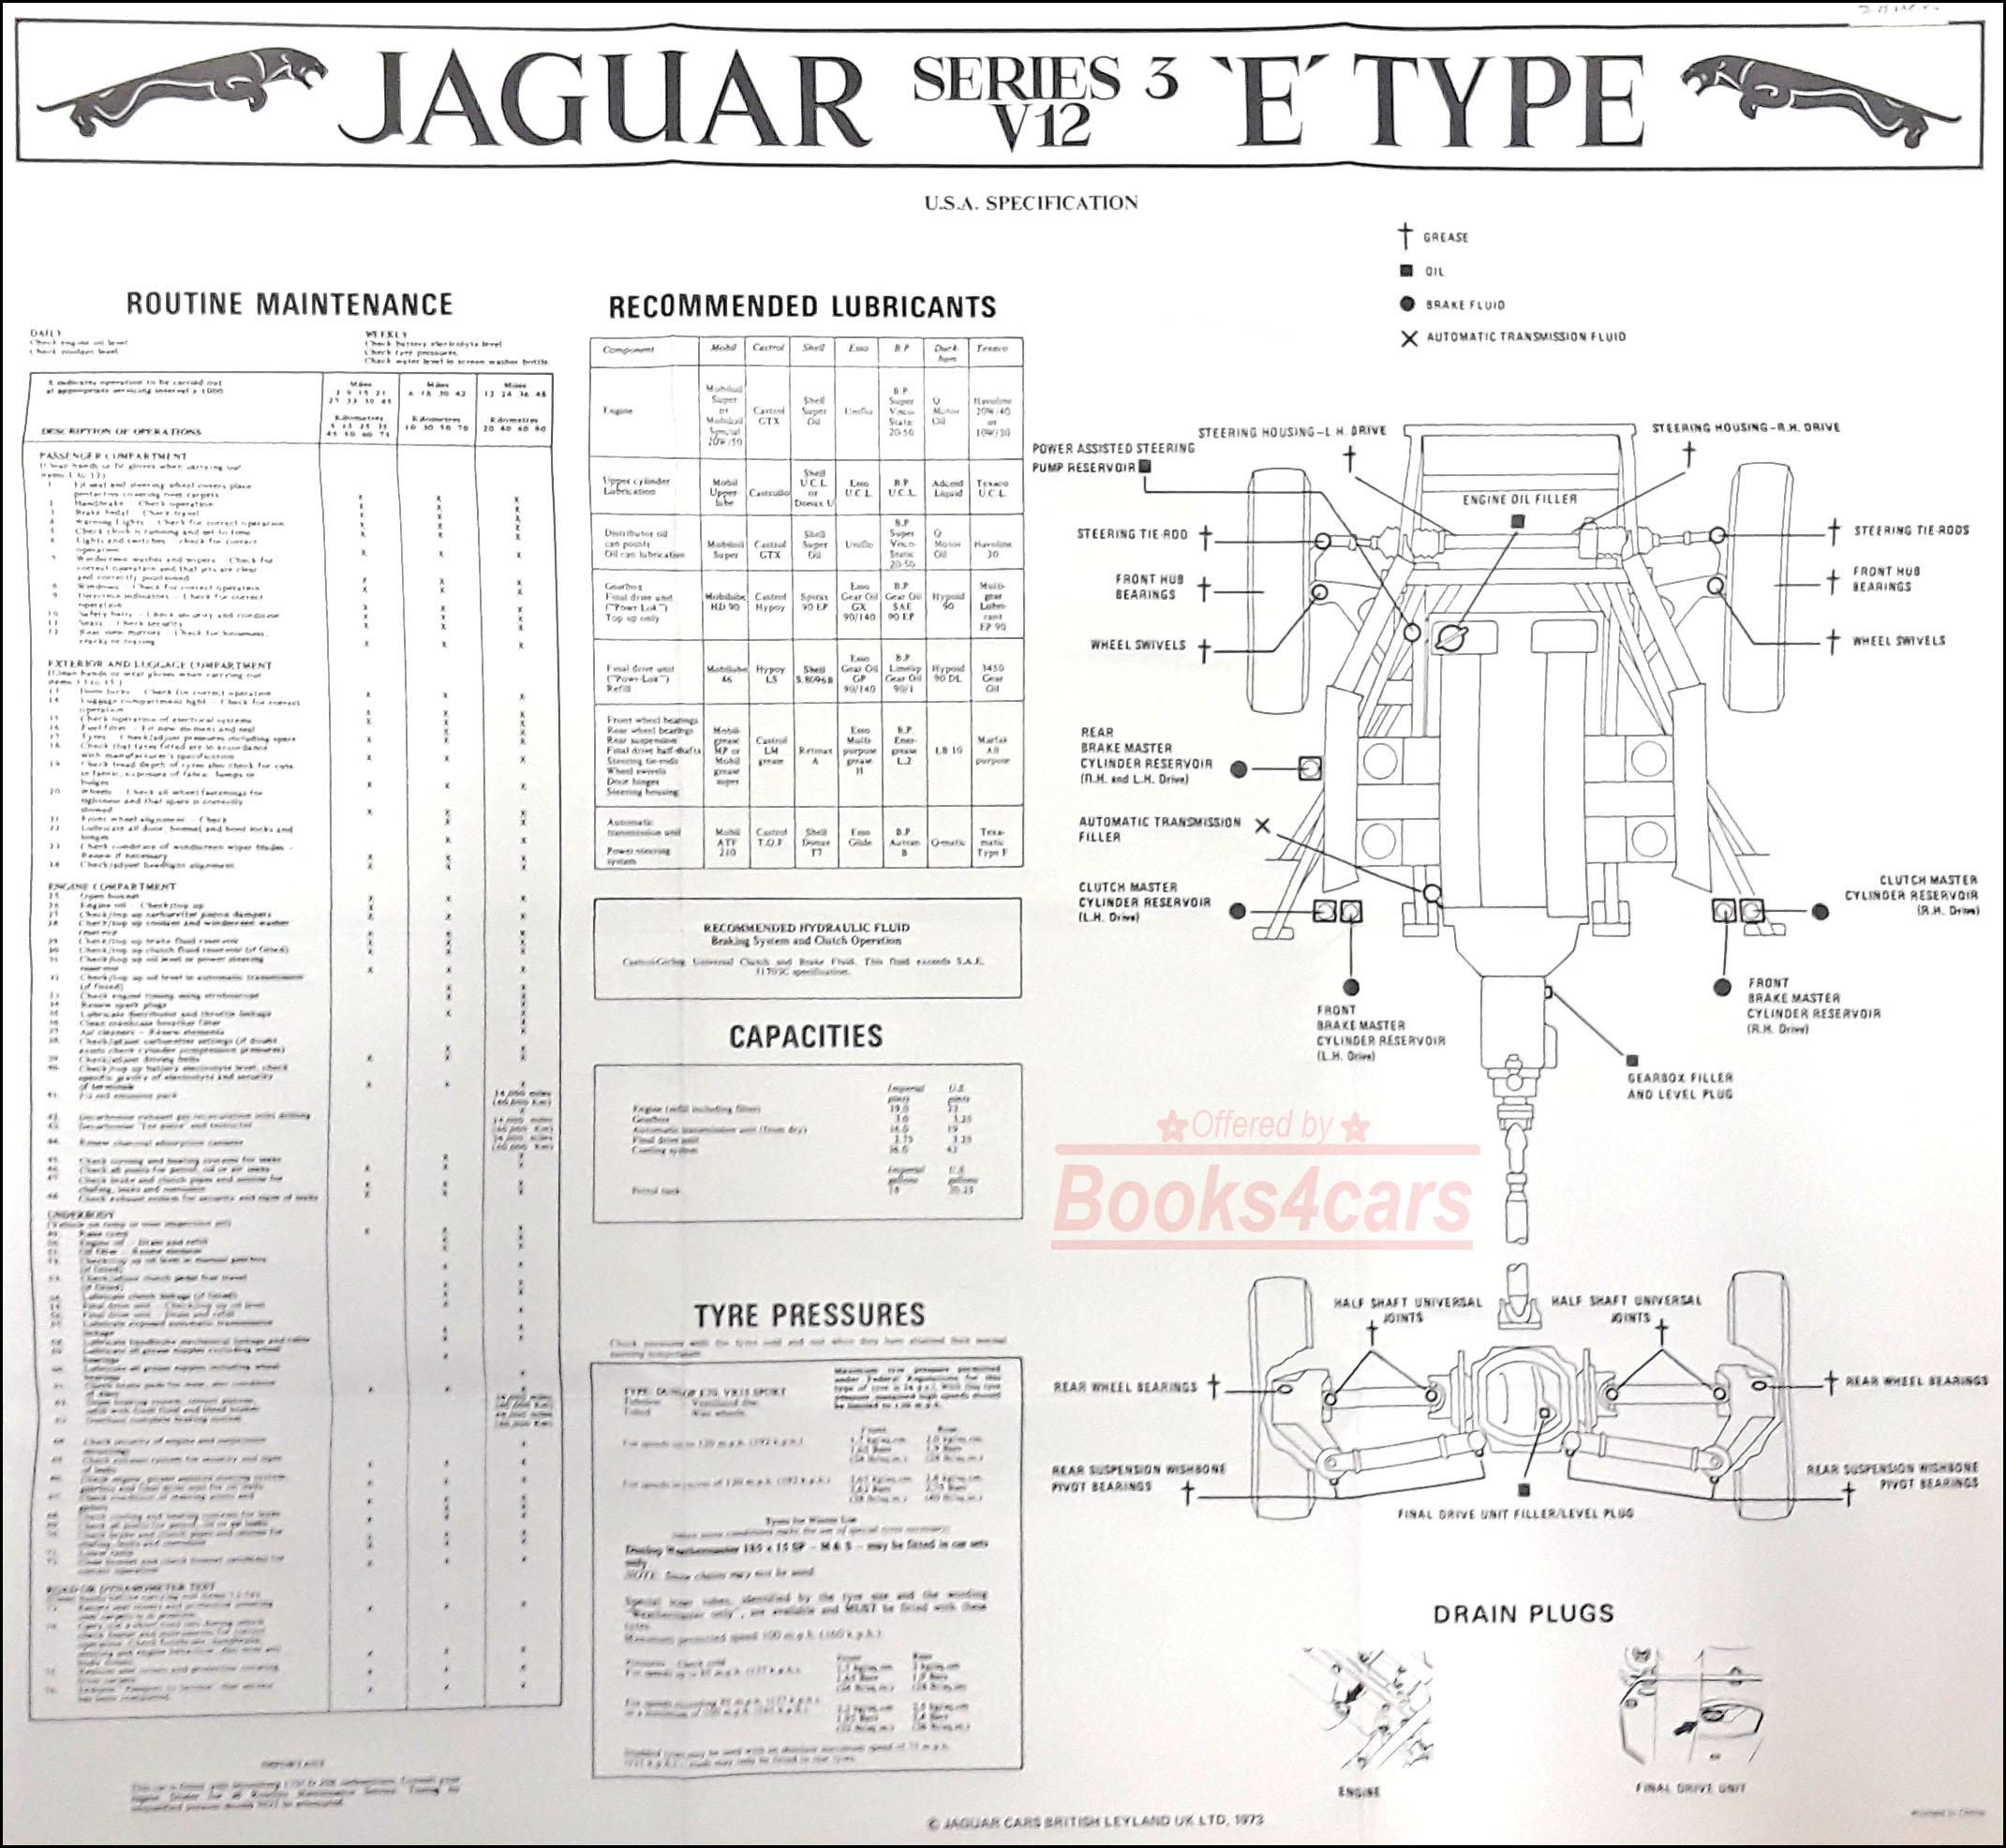 Jaguar Headlight Wiring Diagram | Wiring Liry on